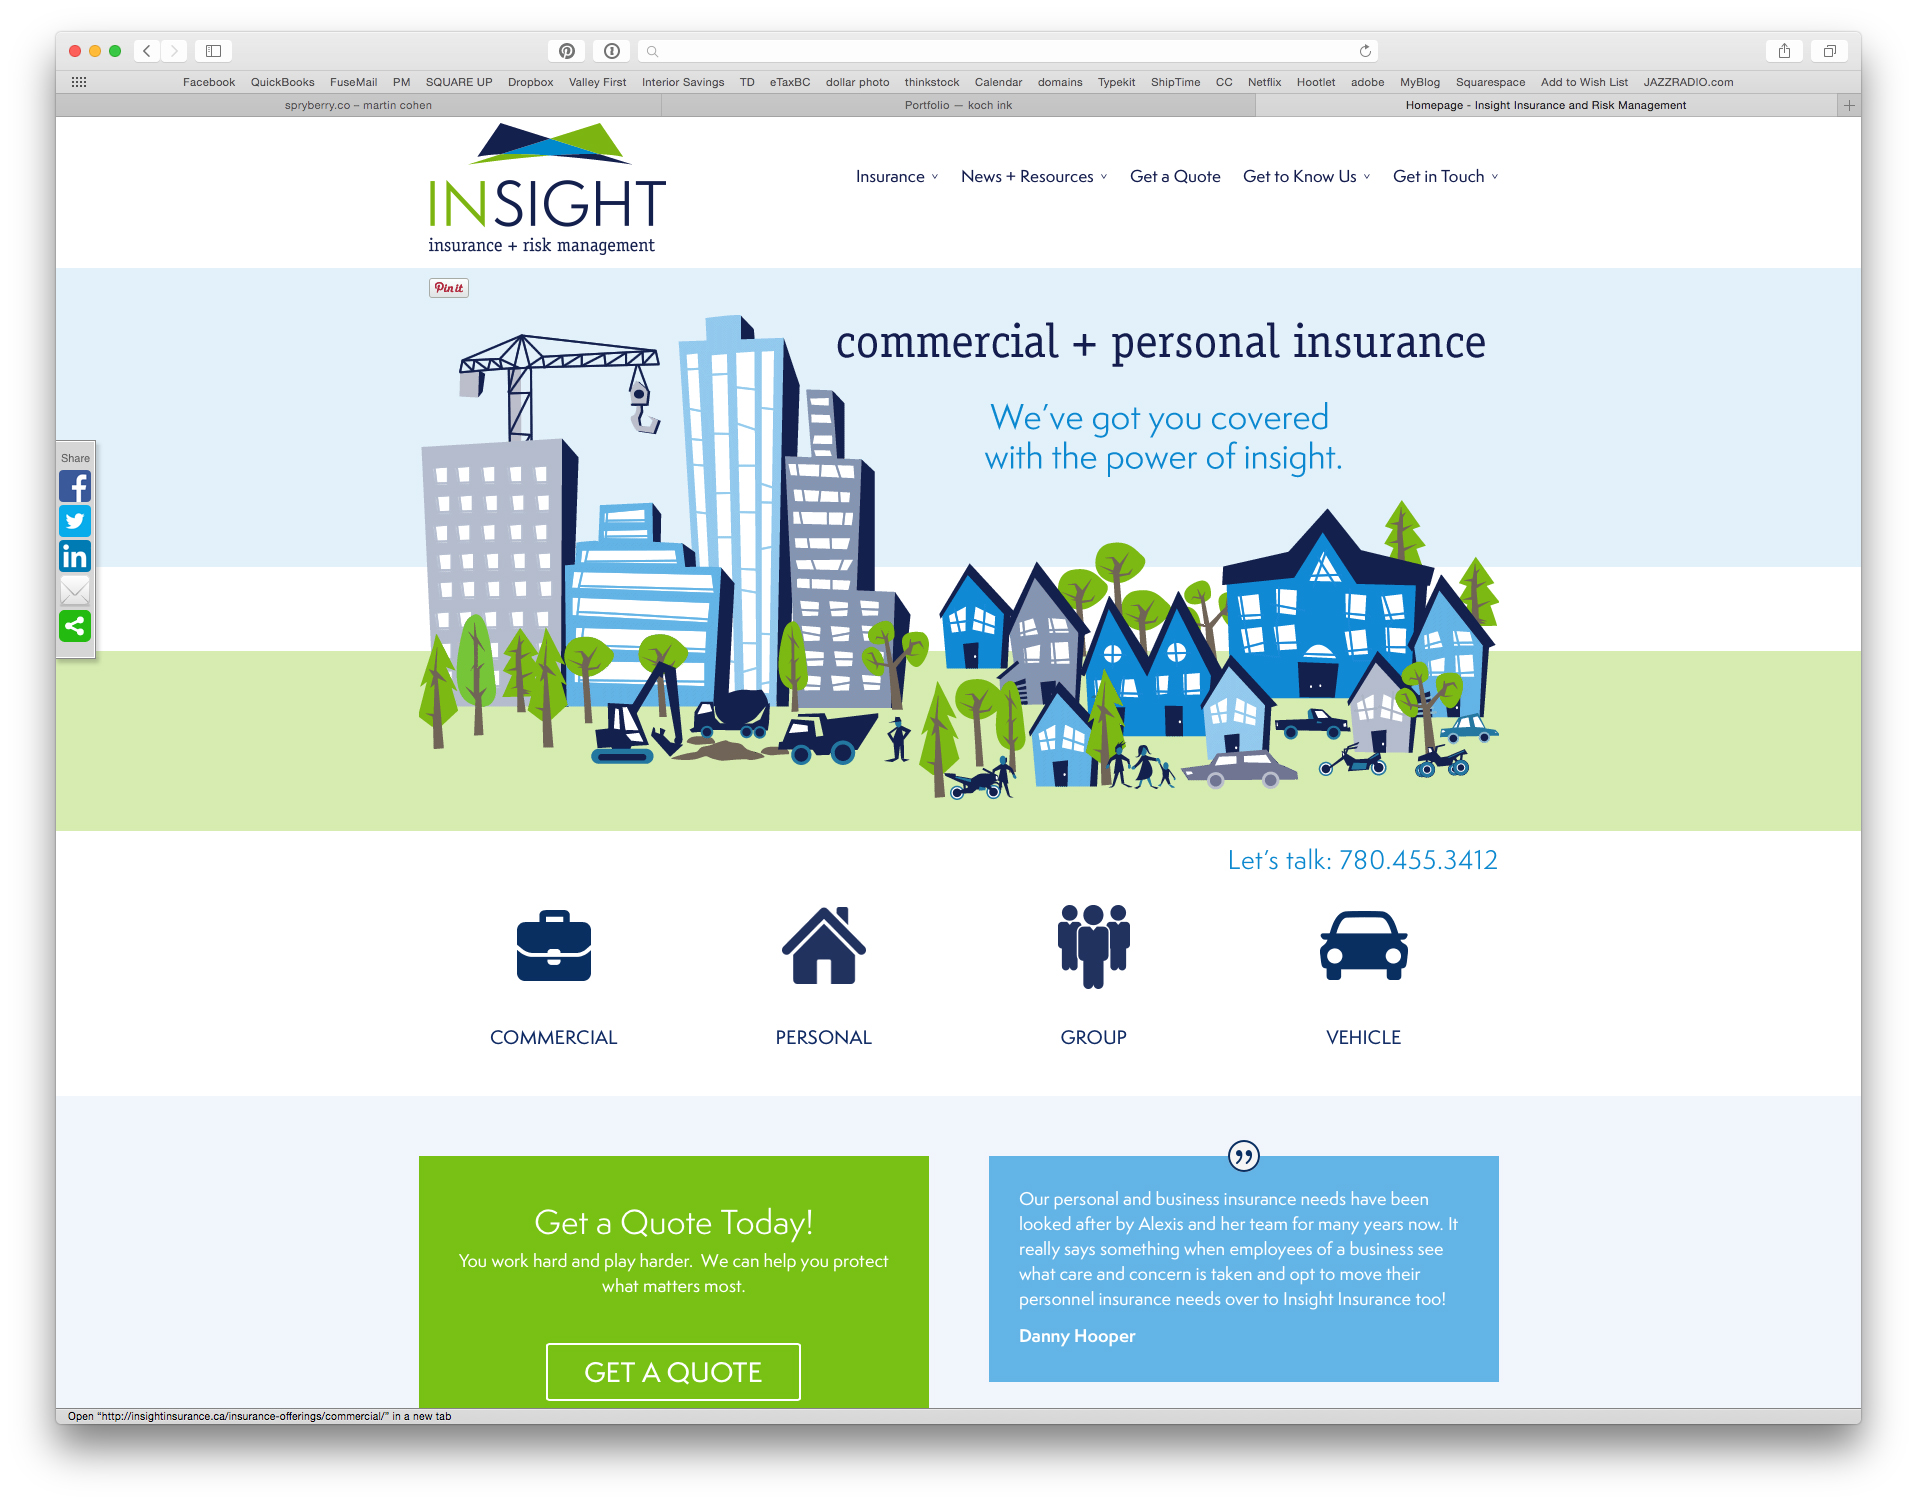 insight insurance home page